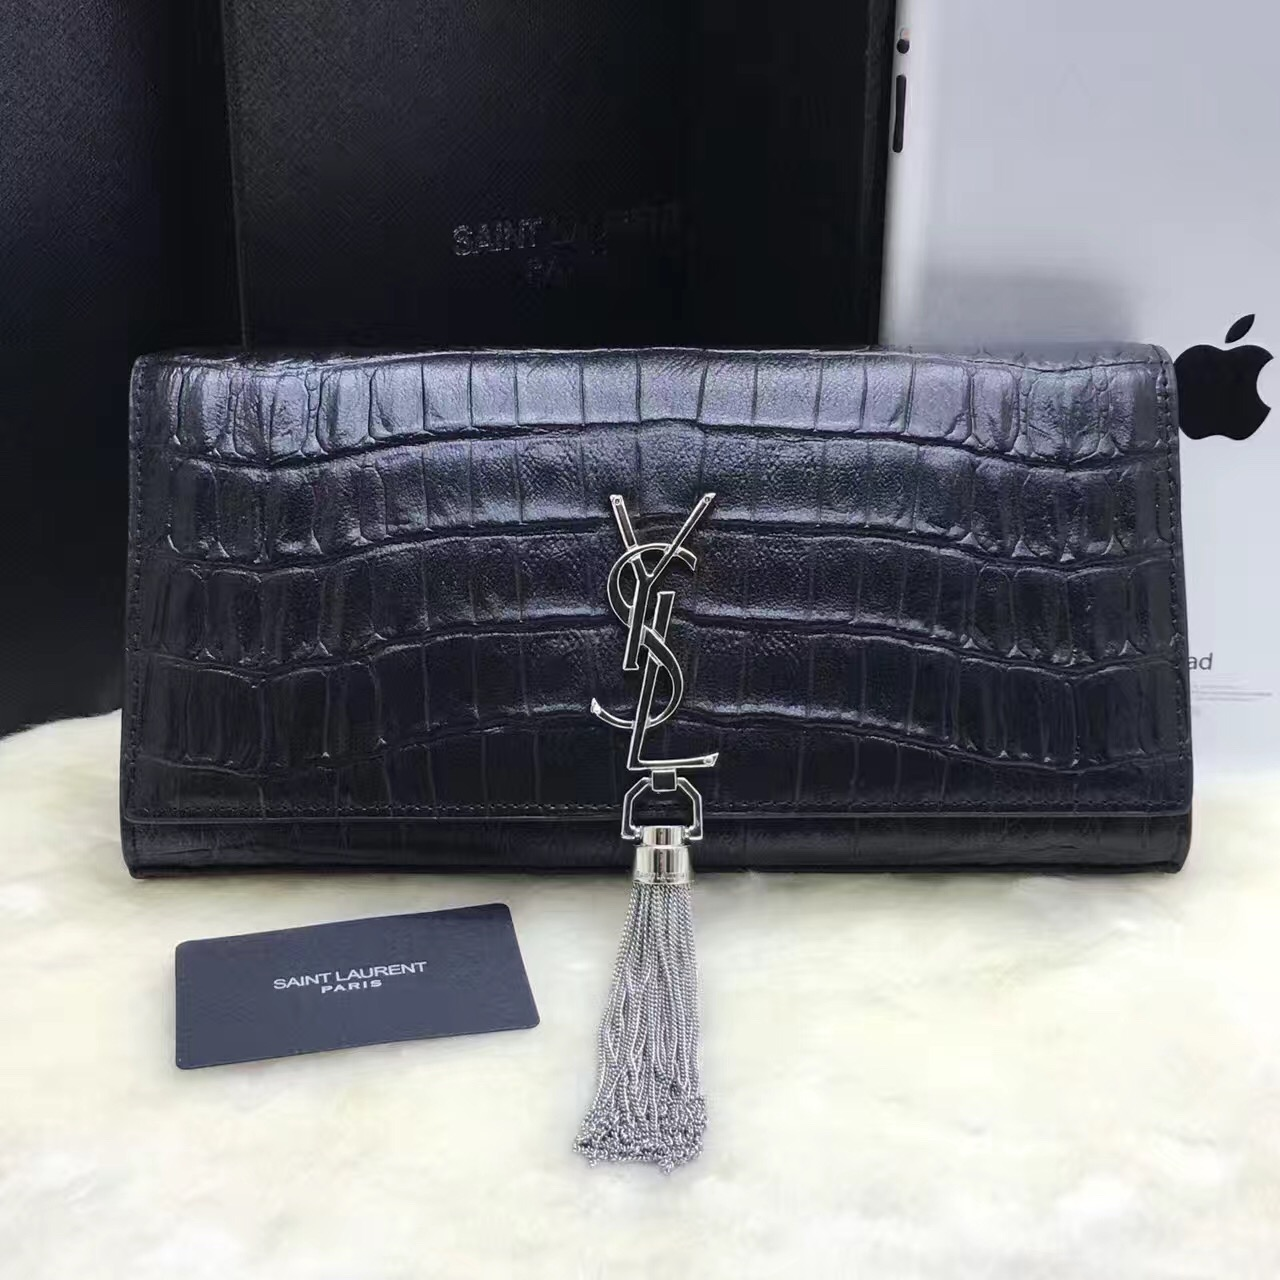 YSL Tassel Clutch 27cm Croco Leather Black Silver